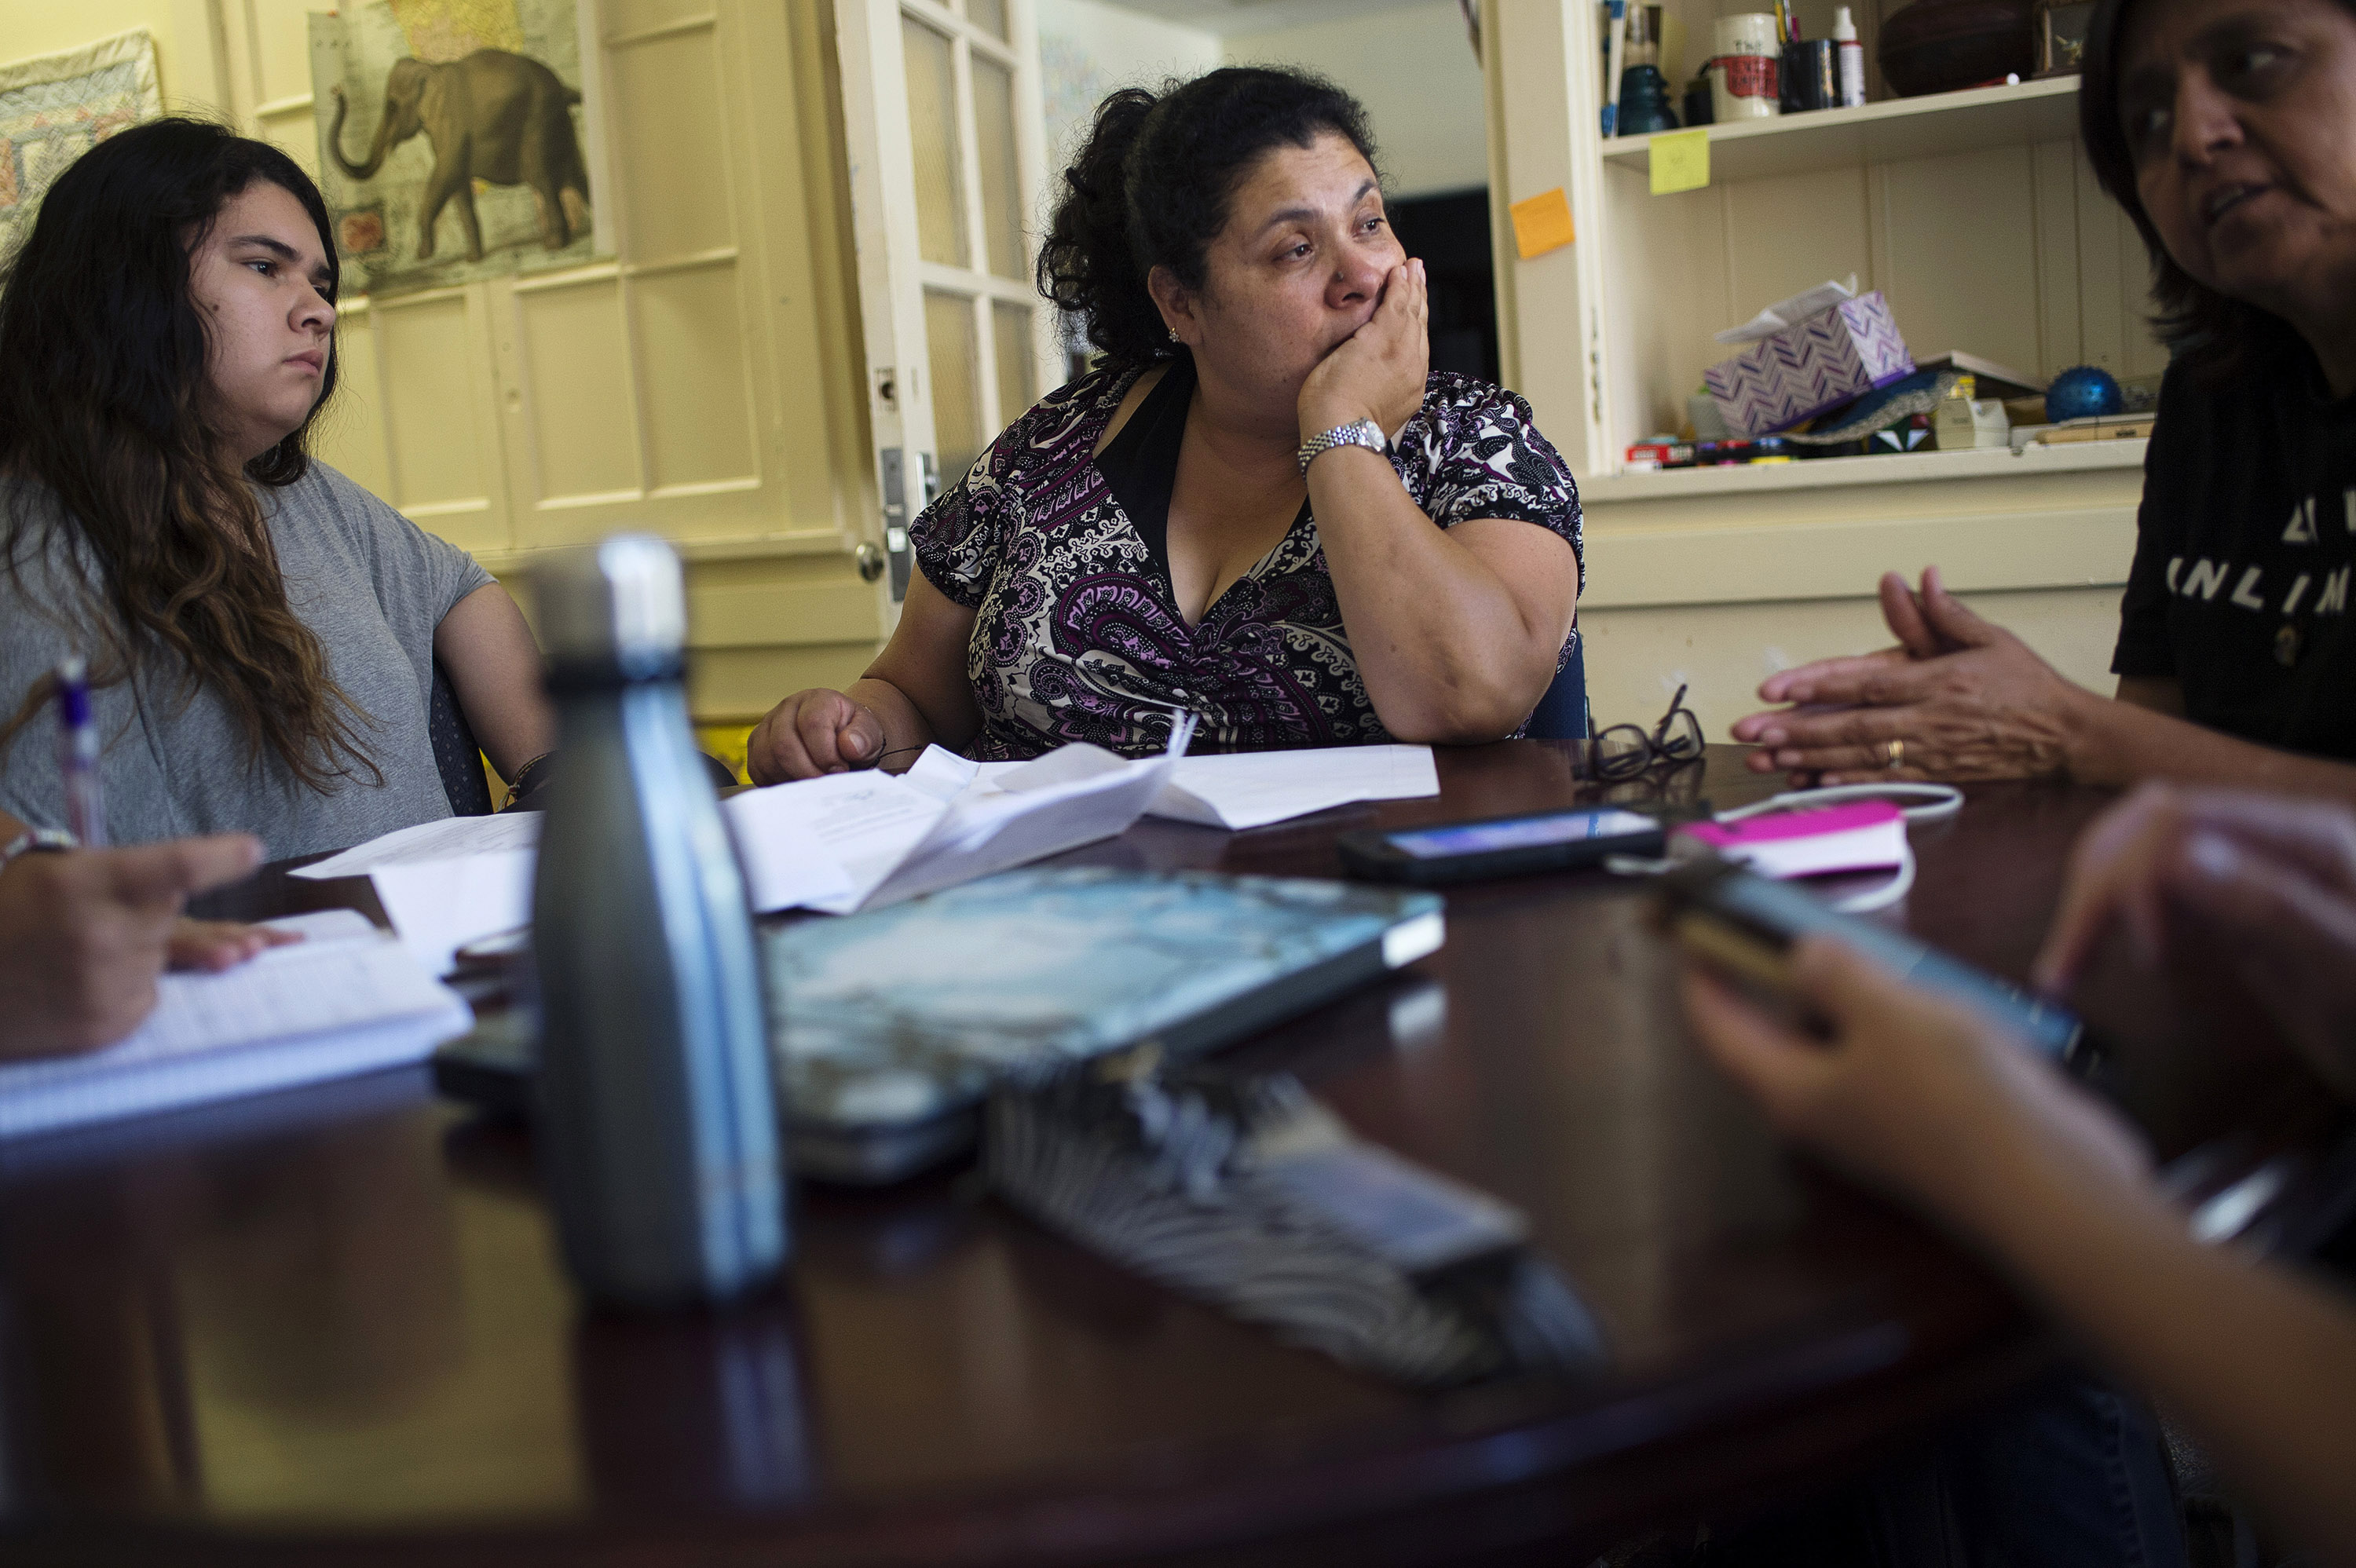 Lourdes Quintana-Salazar, 15, her mother Lourdes Salazar Bautista, and family friend Leonor Kromis, of Ann Arbor,